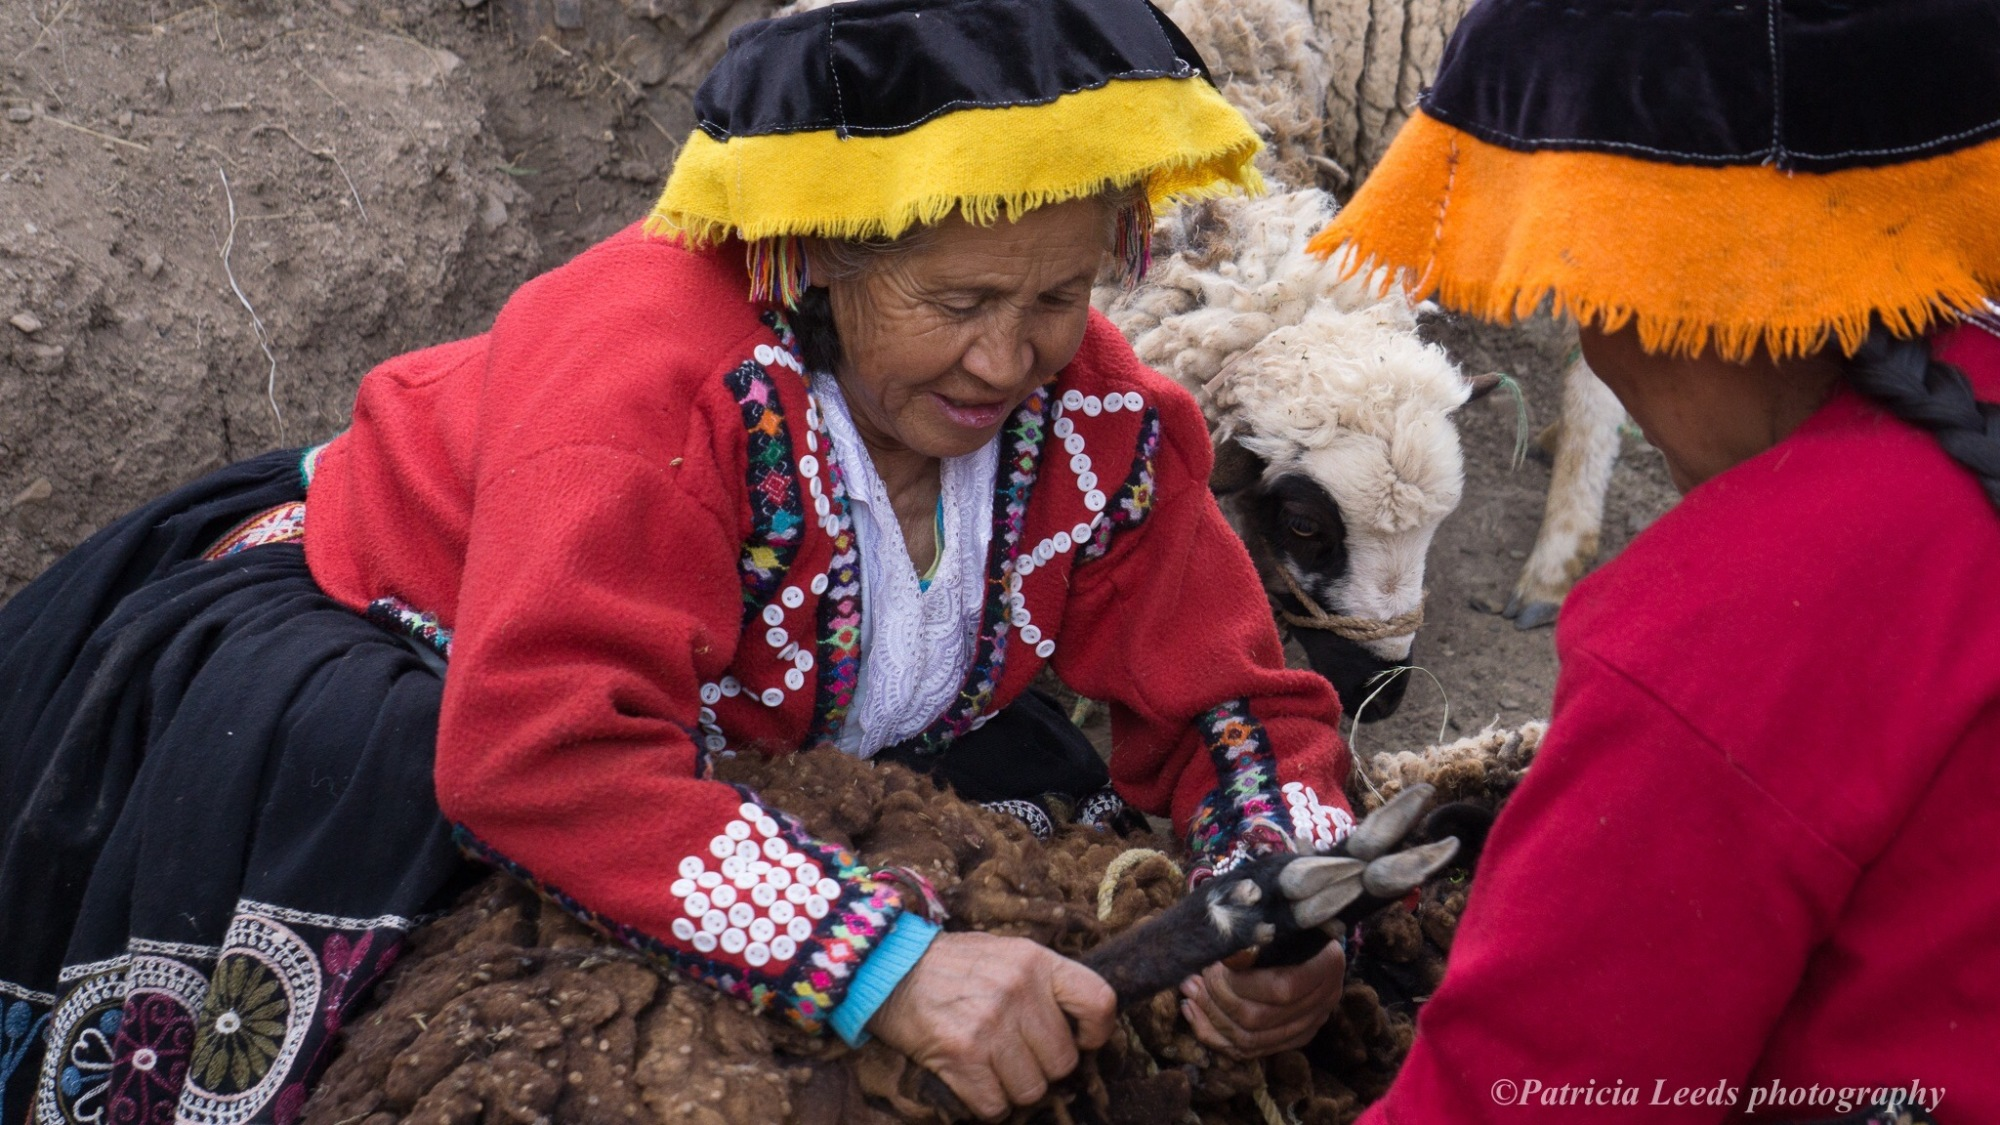 Amaru women shear sheep for wool